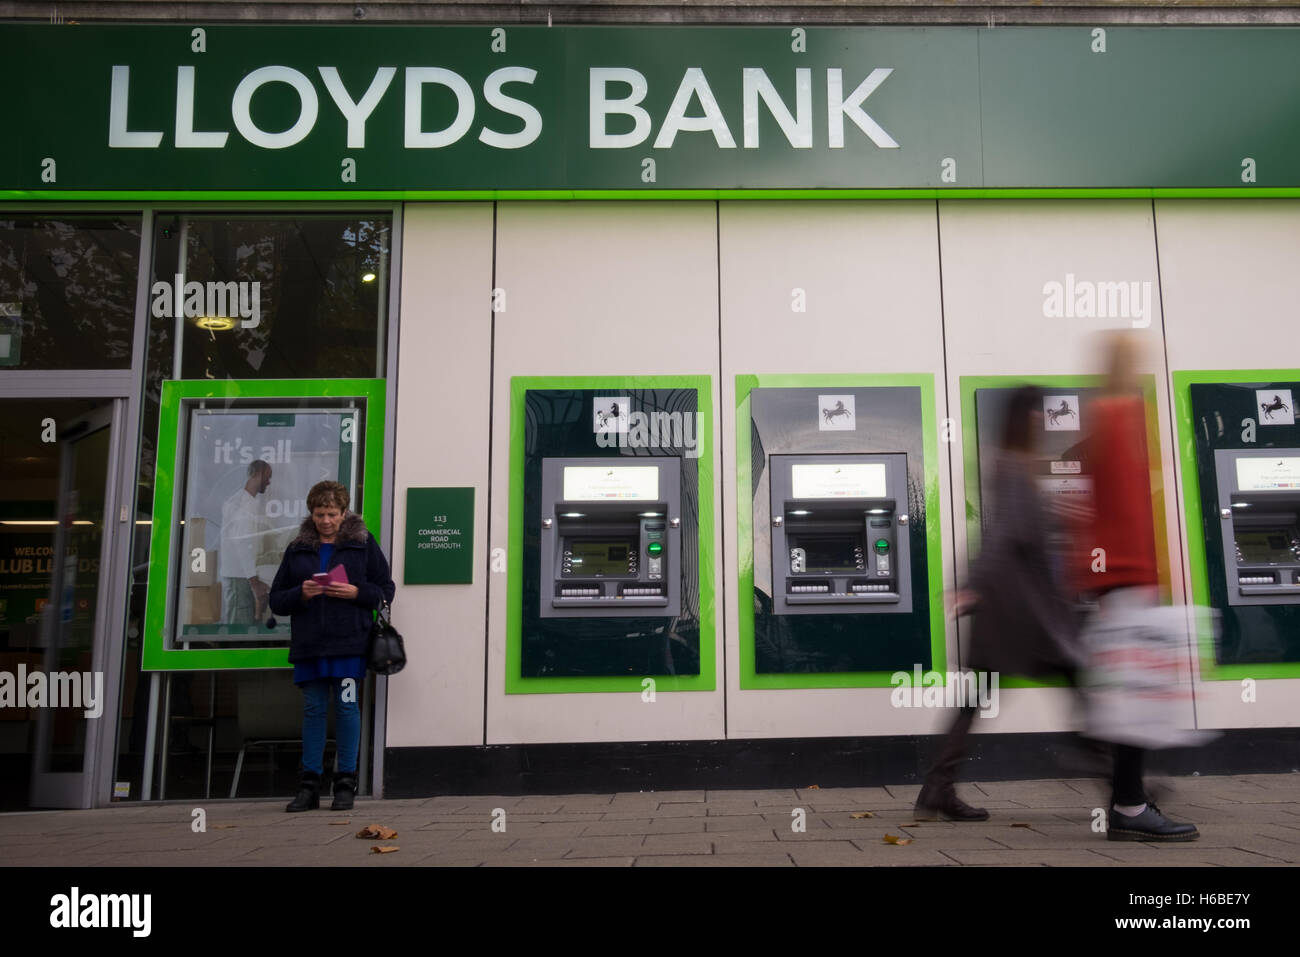 A general view of Lloyds Bank in Commercial Road, Portsmouth Stock Photo